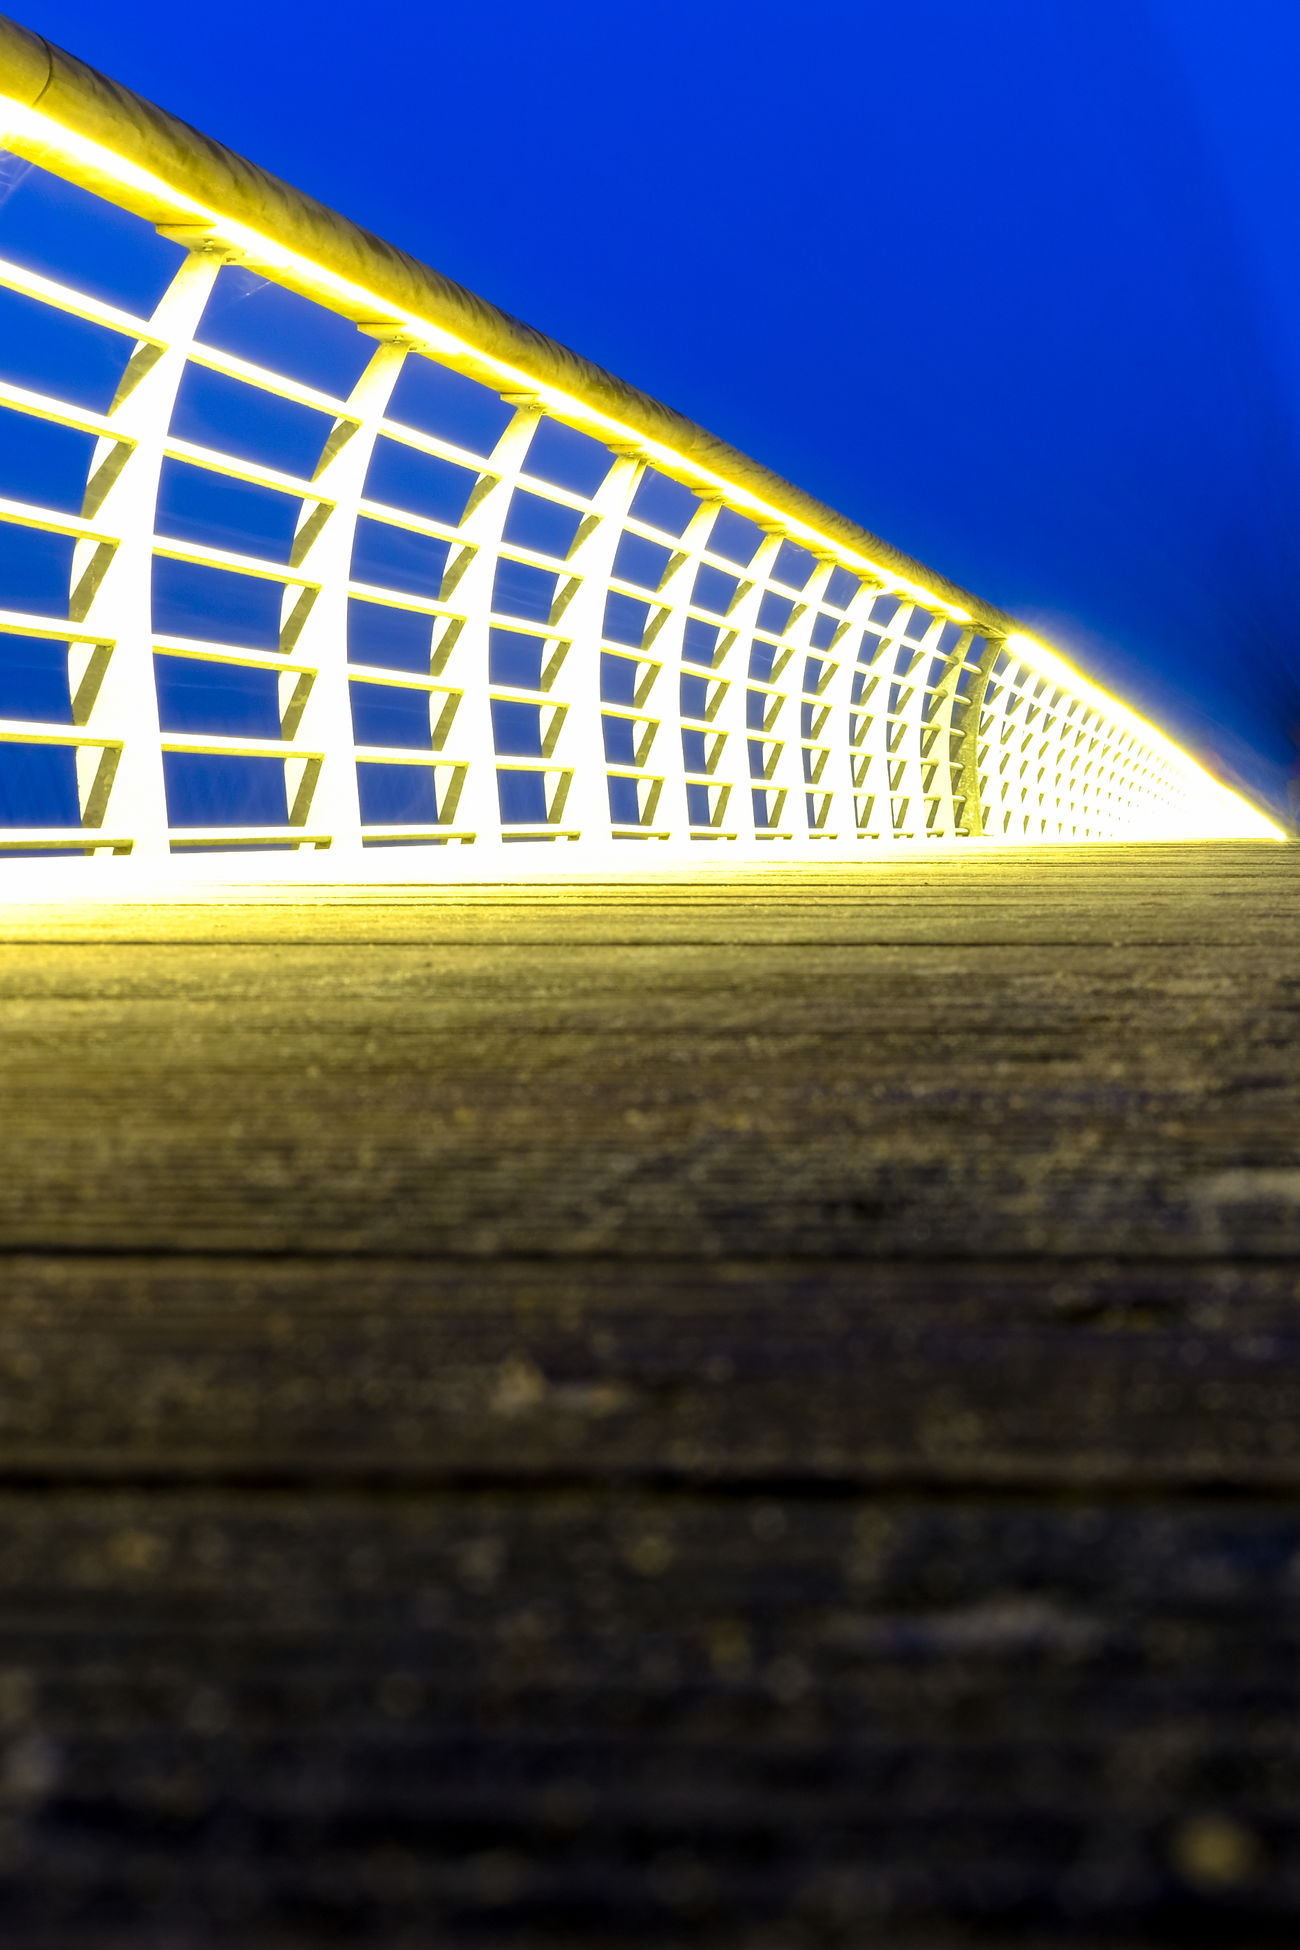 Seebrücke Niendorf Architecture Blue Close-up Day Fresh On Eyeem  FUJIFILM X-T2 Illuminated Lights And Shadows Niendorf Night Lights Nightphotography No People No People, Outdoors Pattern Planking Seebrücke Sky Text White Color Wood